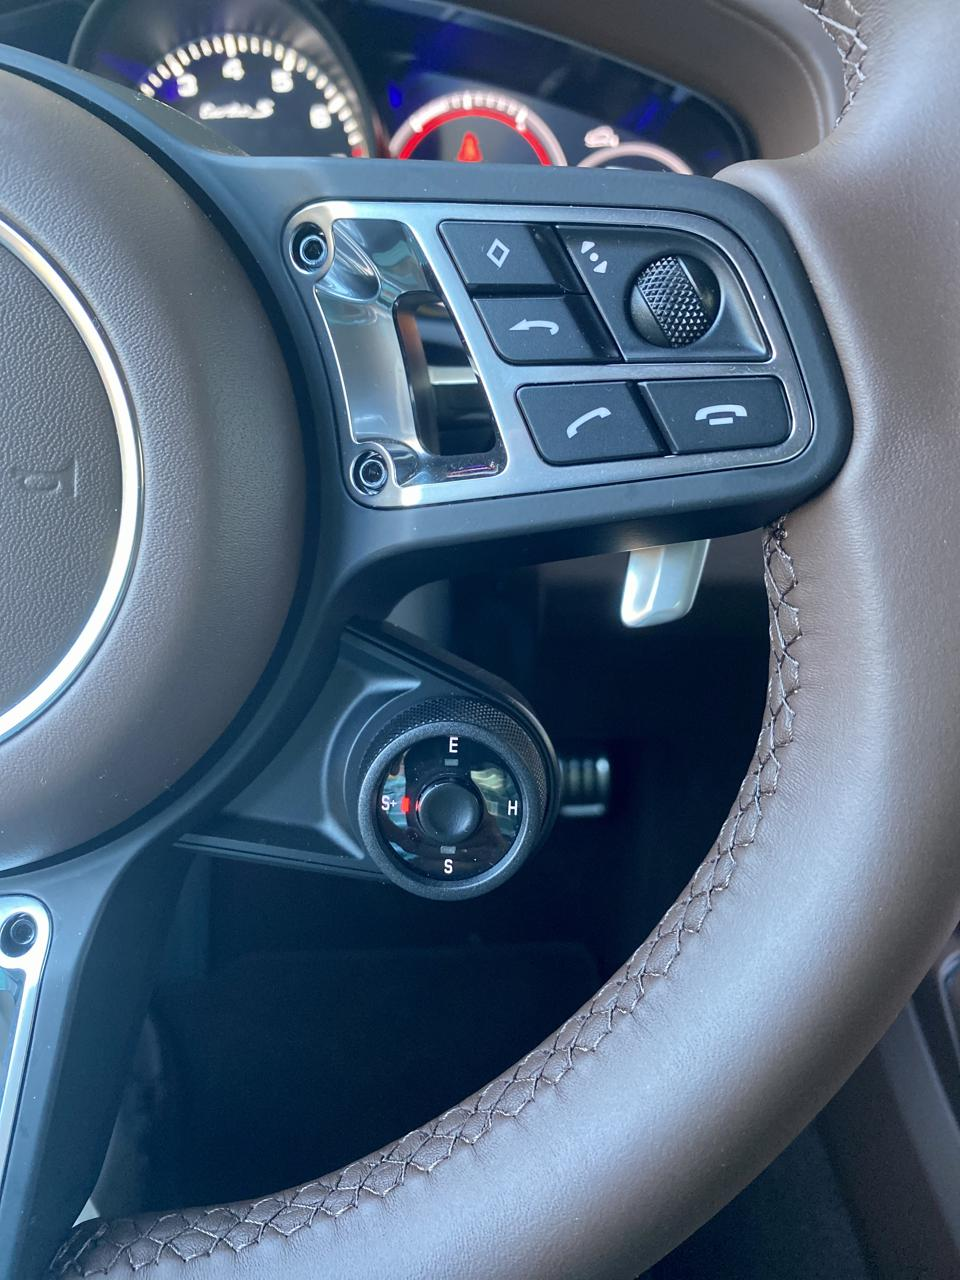 The Joy Button. Sport + brings incredible acceleration.